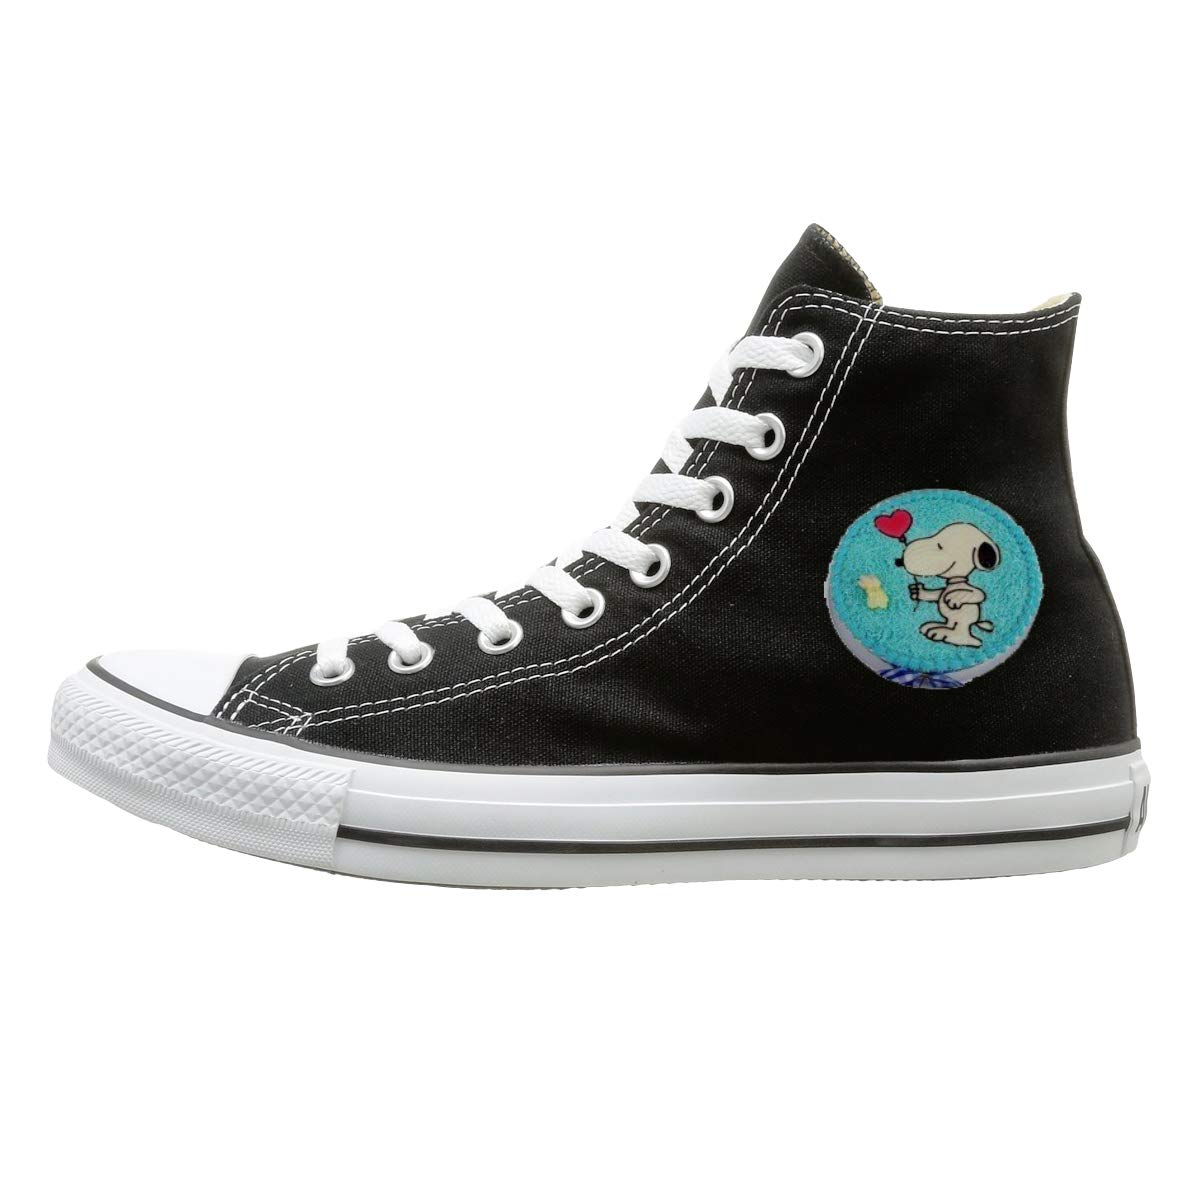 Sakanpo Blue Snoopy Canvas Shoes High Top Casual Black Sneakers Unisex Style